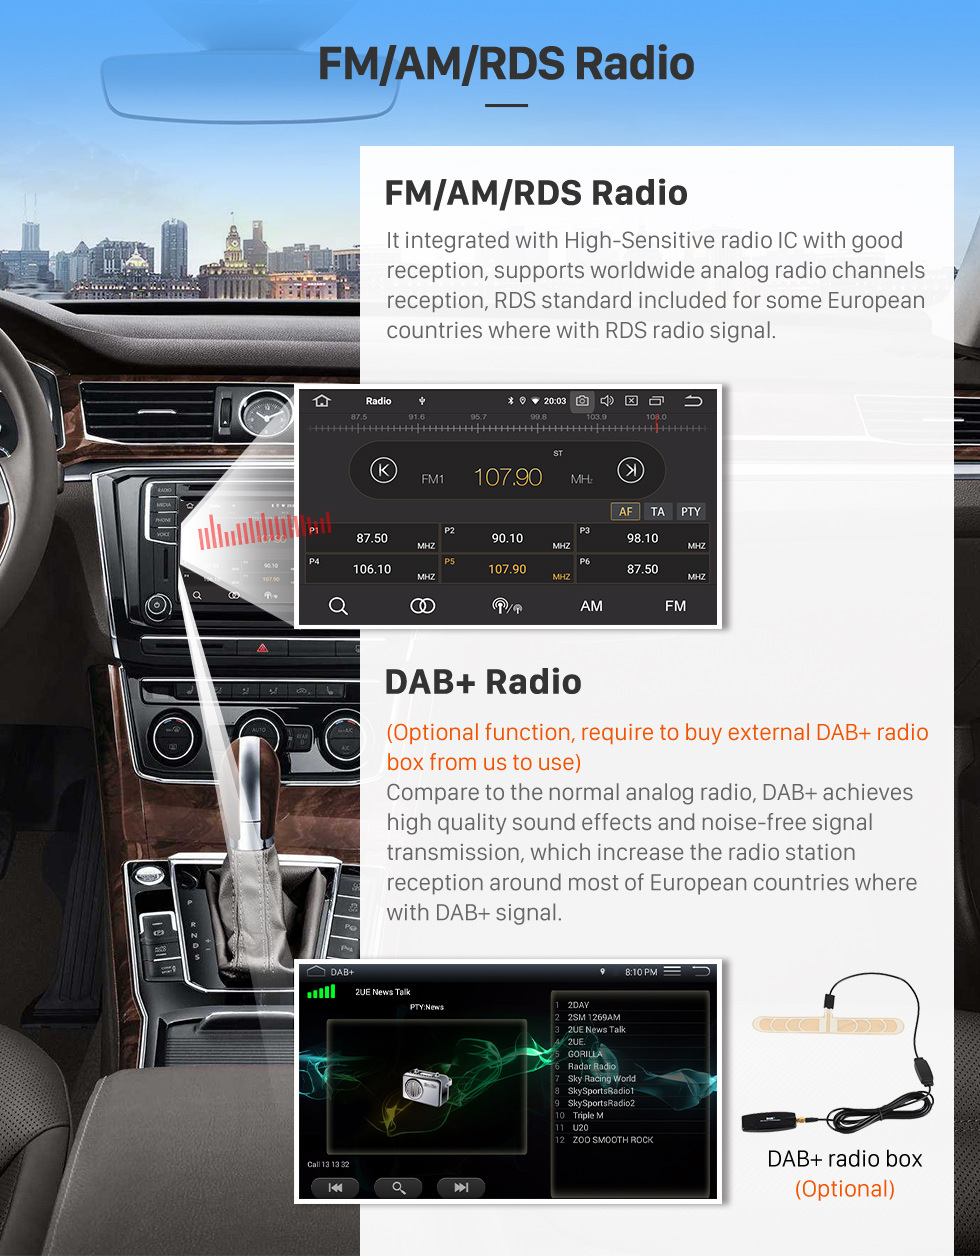 Seicane 7 inch Android 10.0 HD Touchscreen GPS Navigation Radio for 1998-2006 Mercedes Benz CLK-Class W209/G-Class W463 with Carplay Bluetooth support 1080P Video